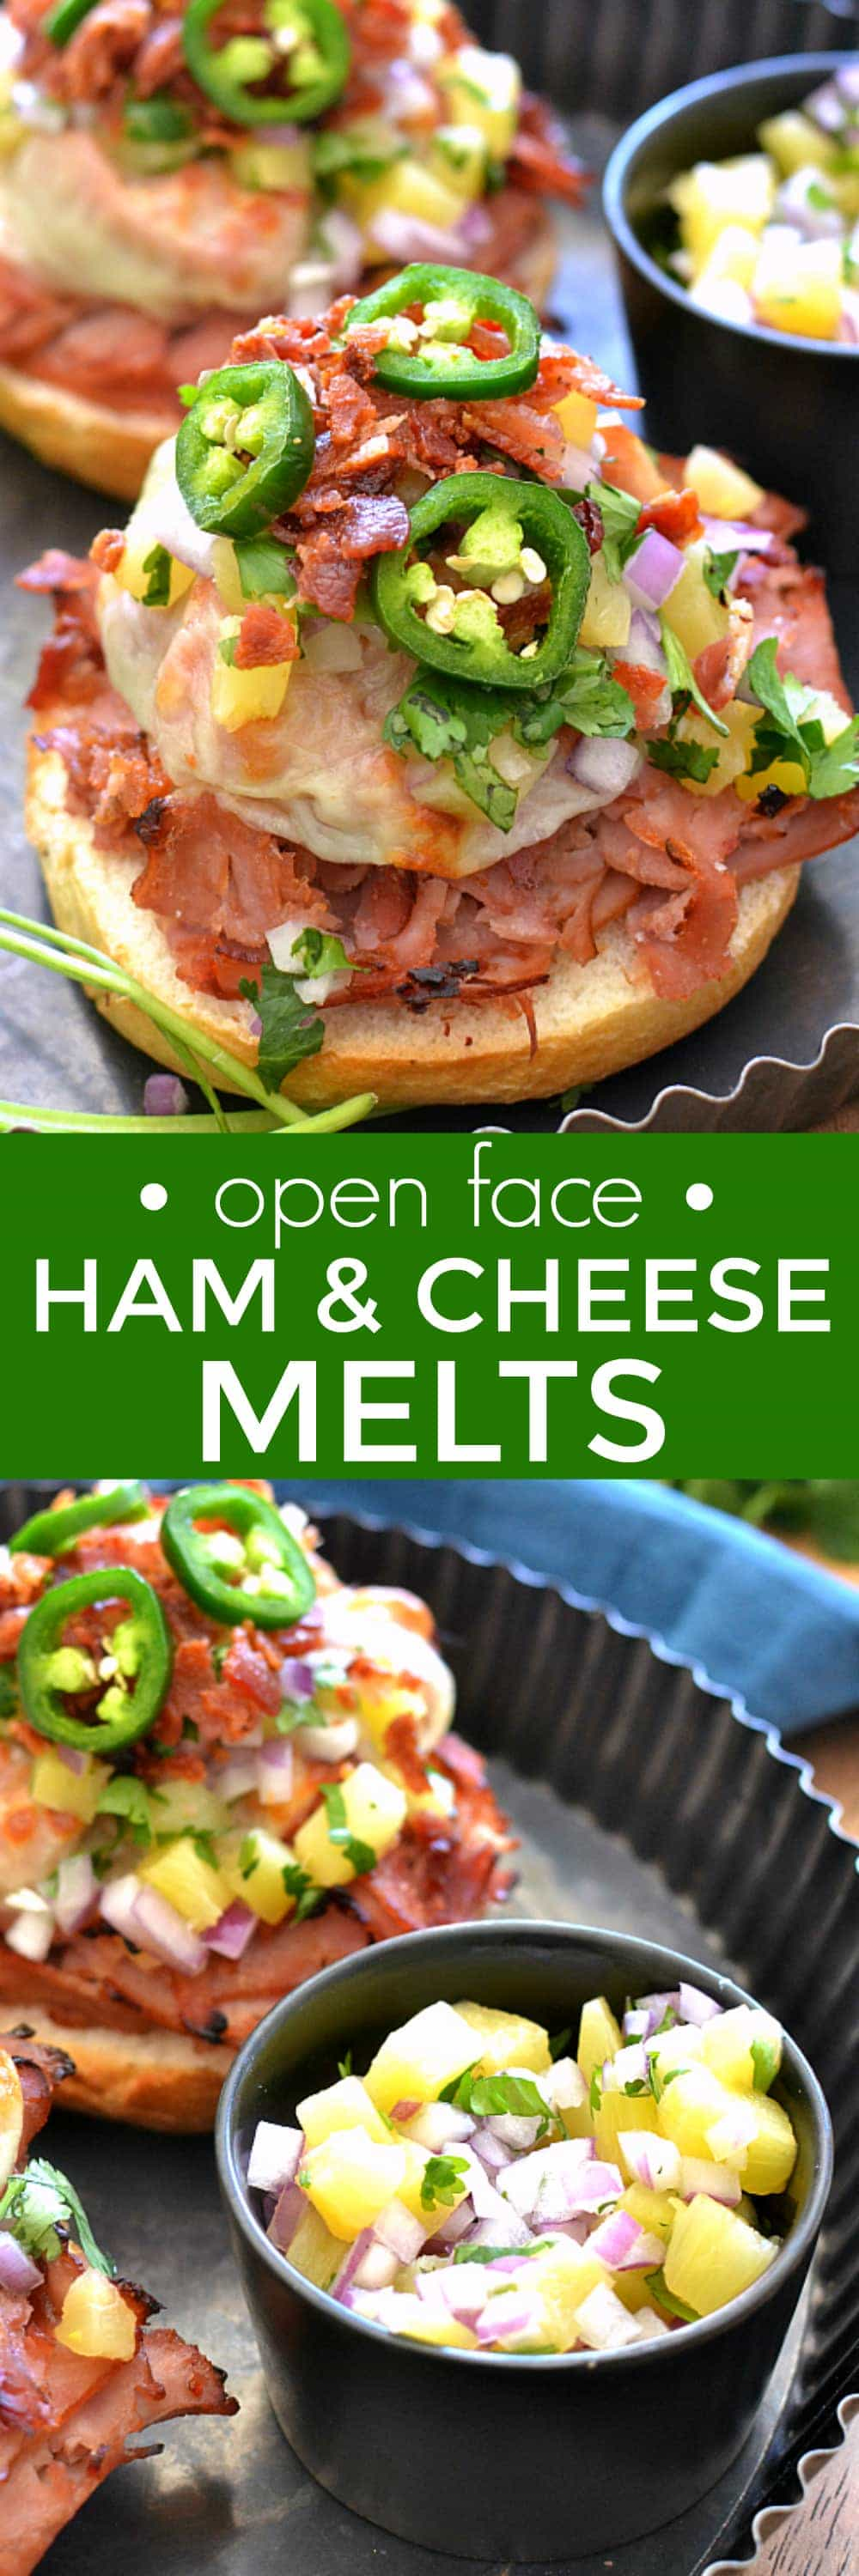 Open-face ham & cheese melts topped with fresh pineapple salsa, crispy bacon, and jalapenos. It's ham and pineapple with a kick!